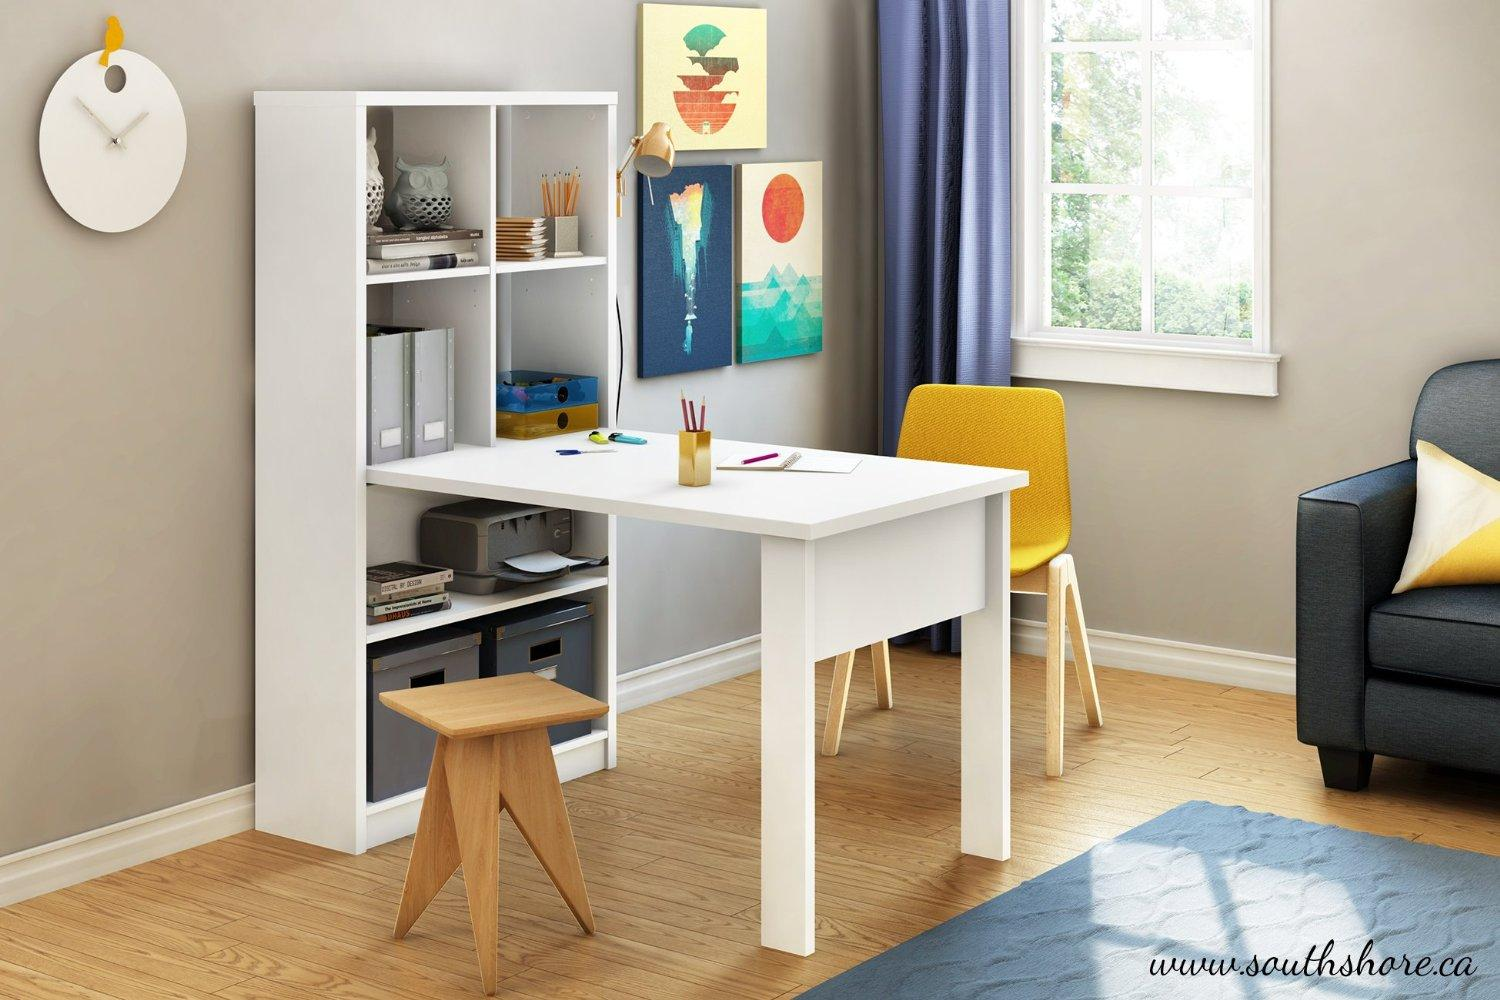 $116.47 South Shore Annexe Craft Table and Storage Unit Combo